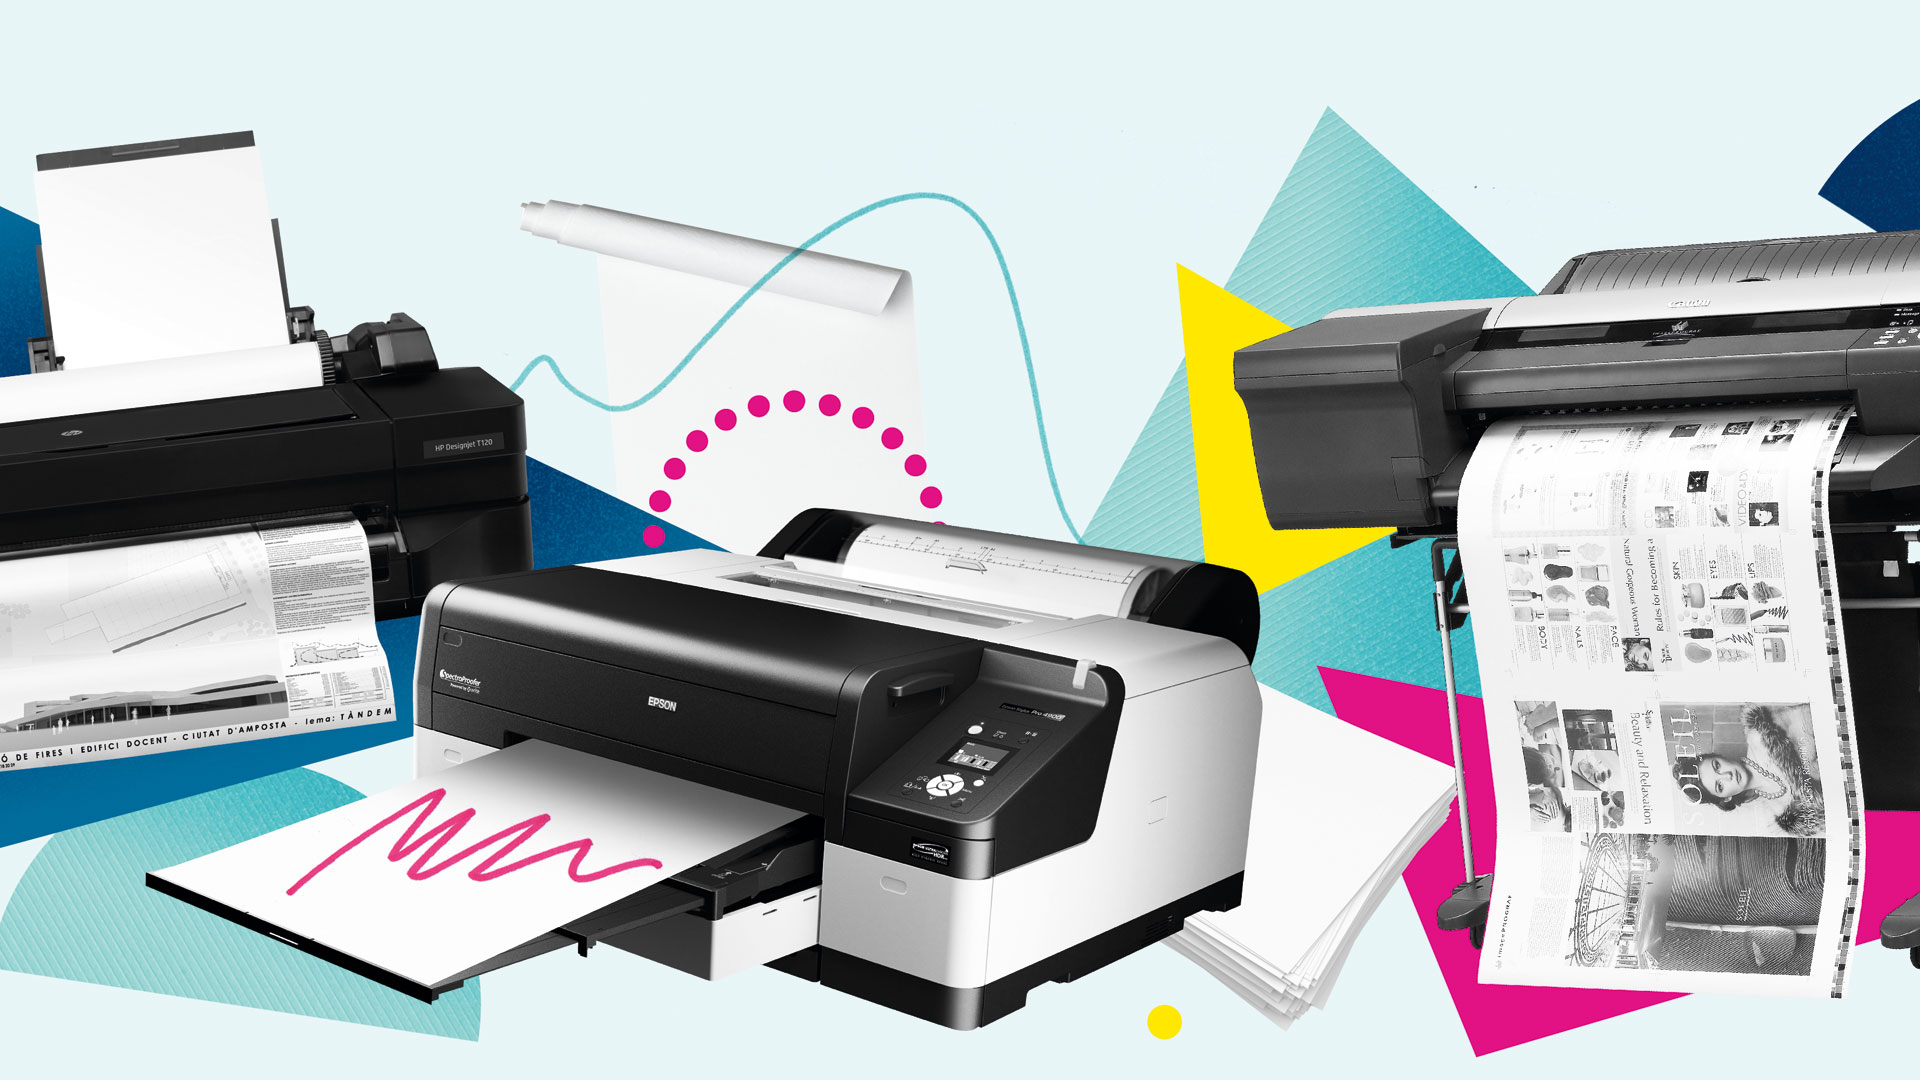 Three high-end printers for serious work